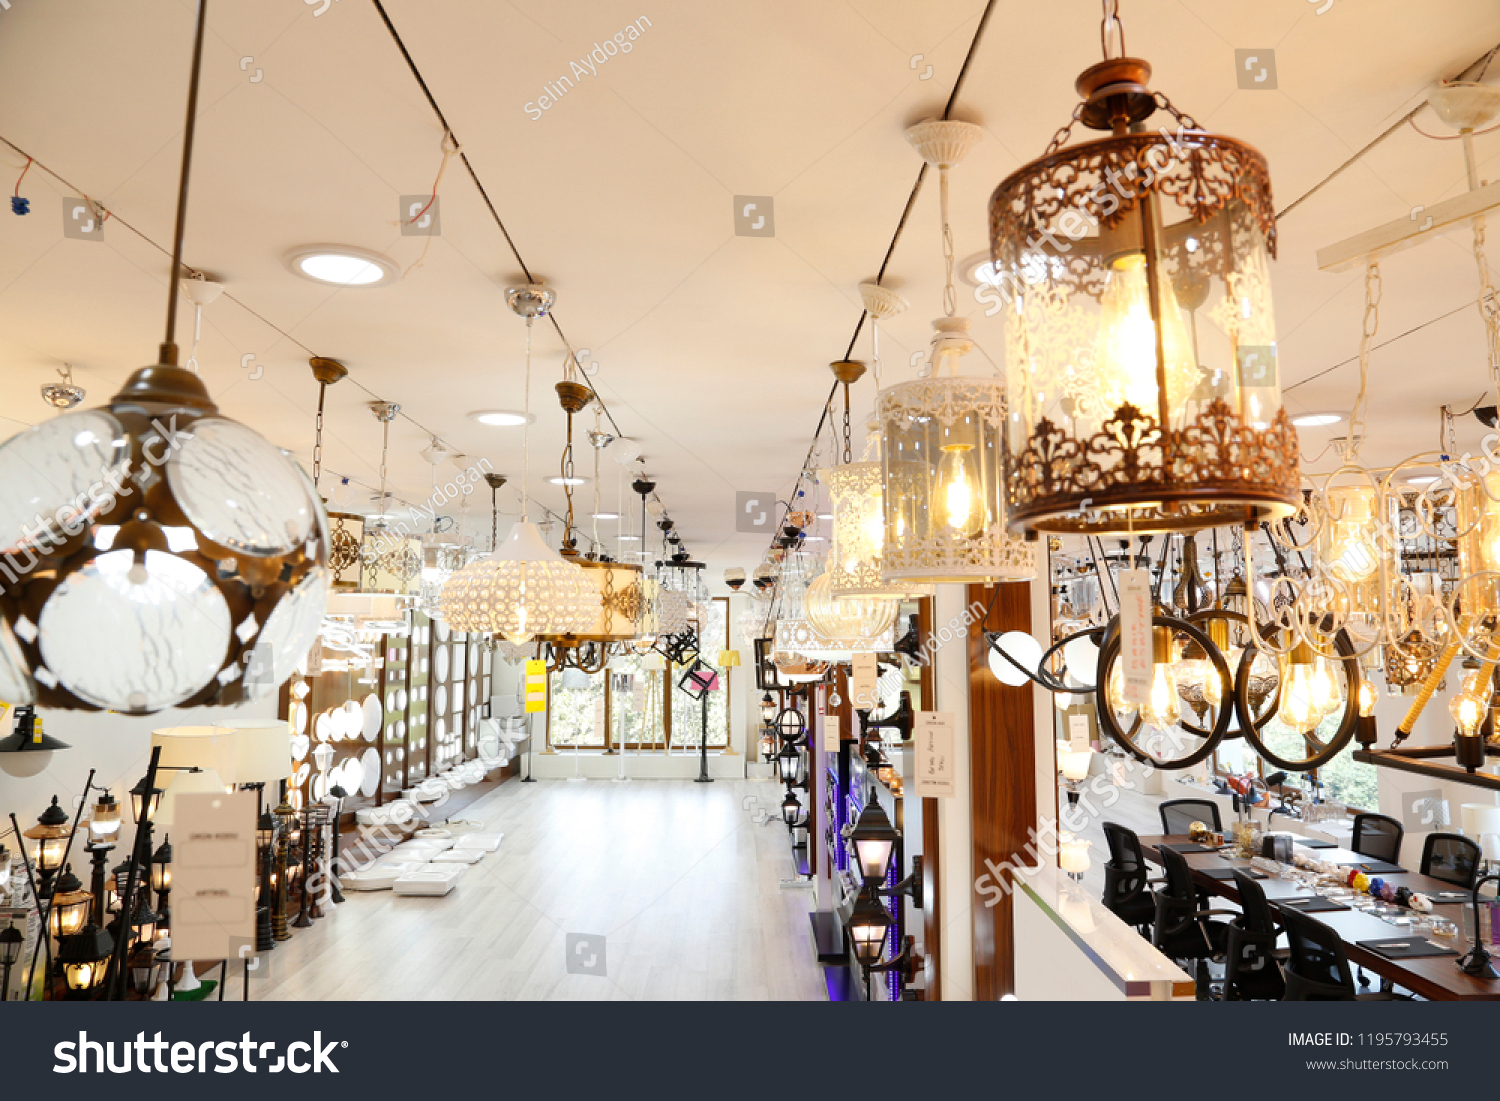 Lights and wall lights in the showroom lighting showroom gallery stainless steel ceiling lights fixture lamps shop lamps crystal chandeliers bulbs